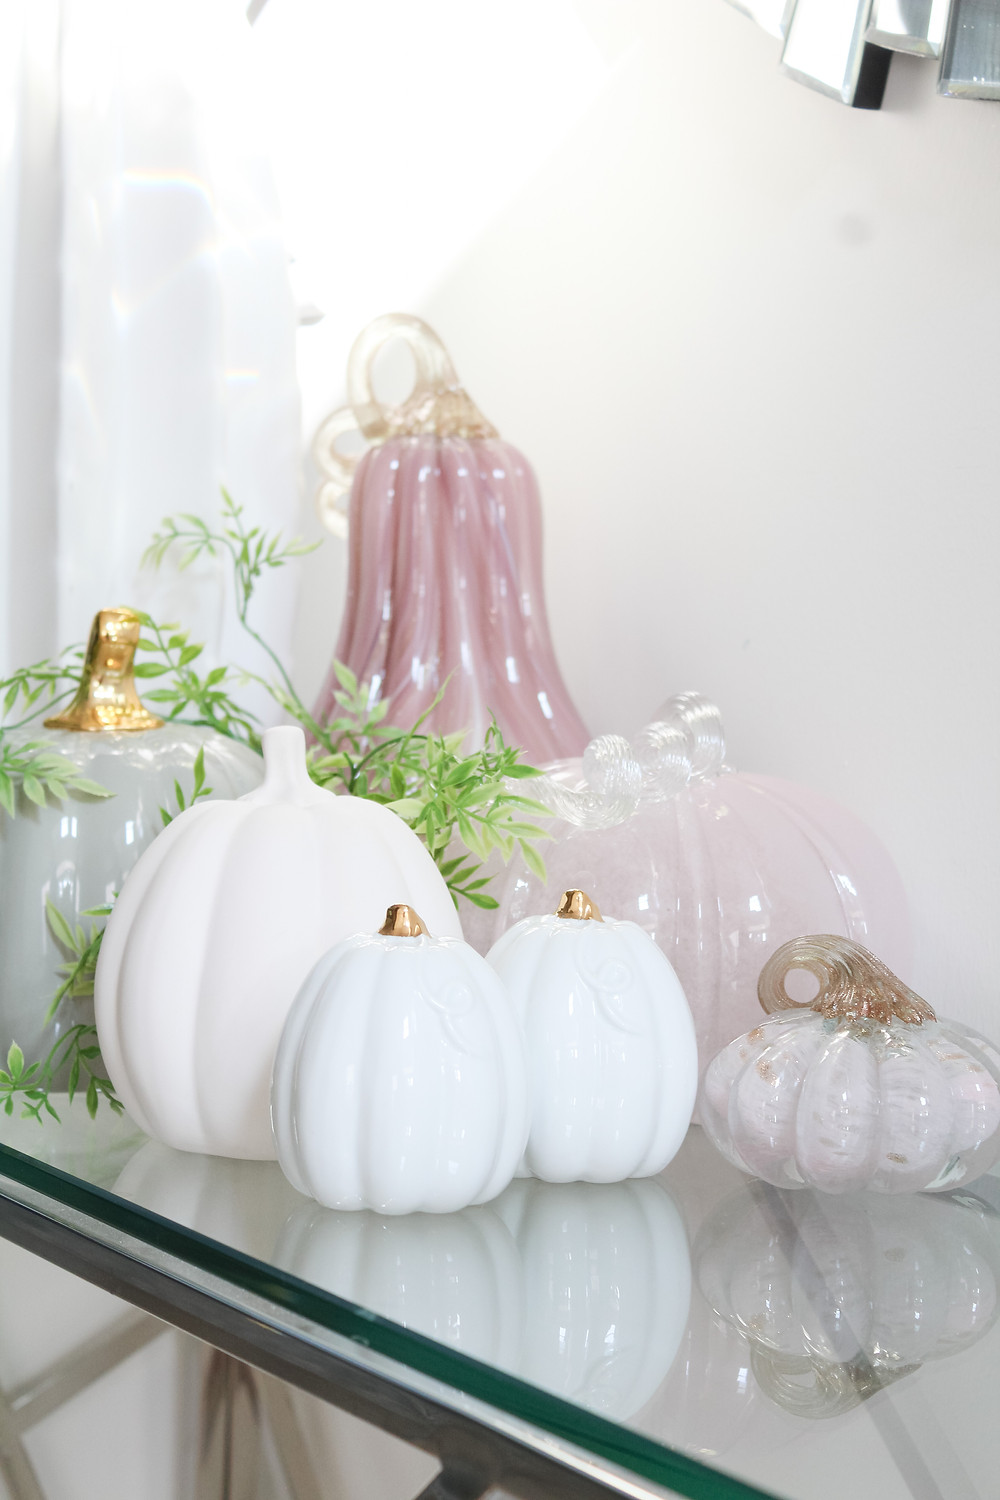 Check out this stunning fall tour filled with fall colors, pumpkins and gourds. The living room, bedroom and foyer are filled with fall home decor ideas and fall decorating tips and fall inspiration. #falldecor #fallhometour #fallinspiration #falldecorating